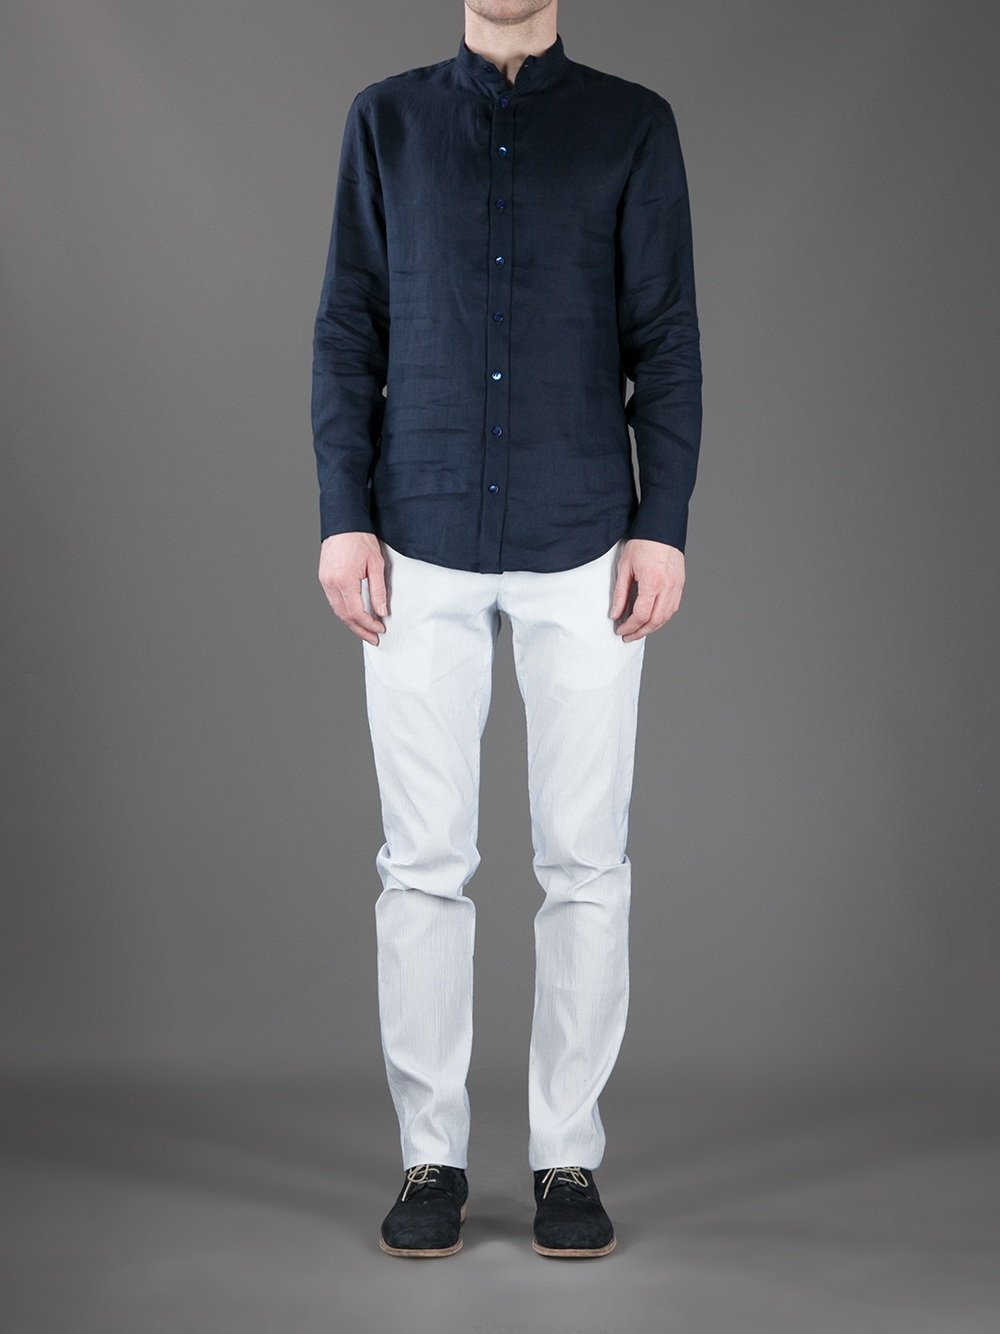 Mens Linen Shirts Uk